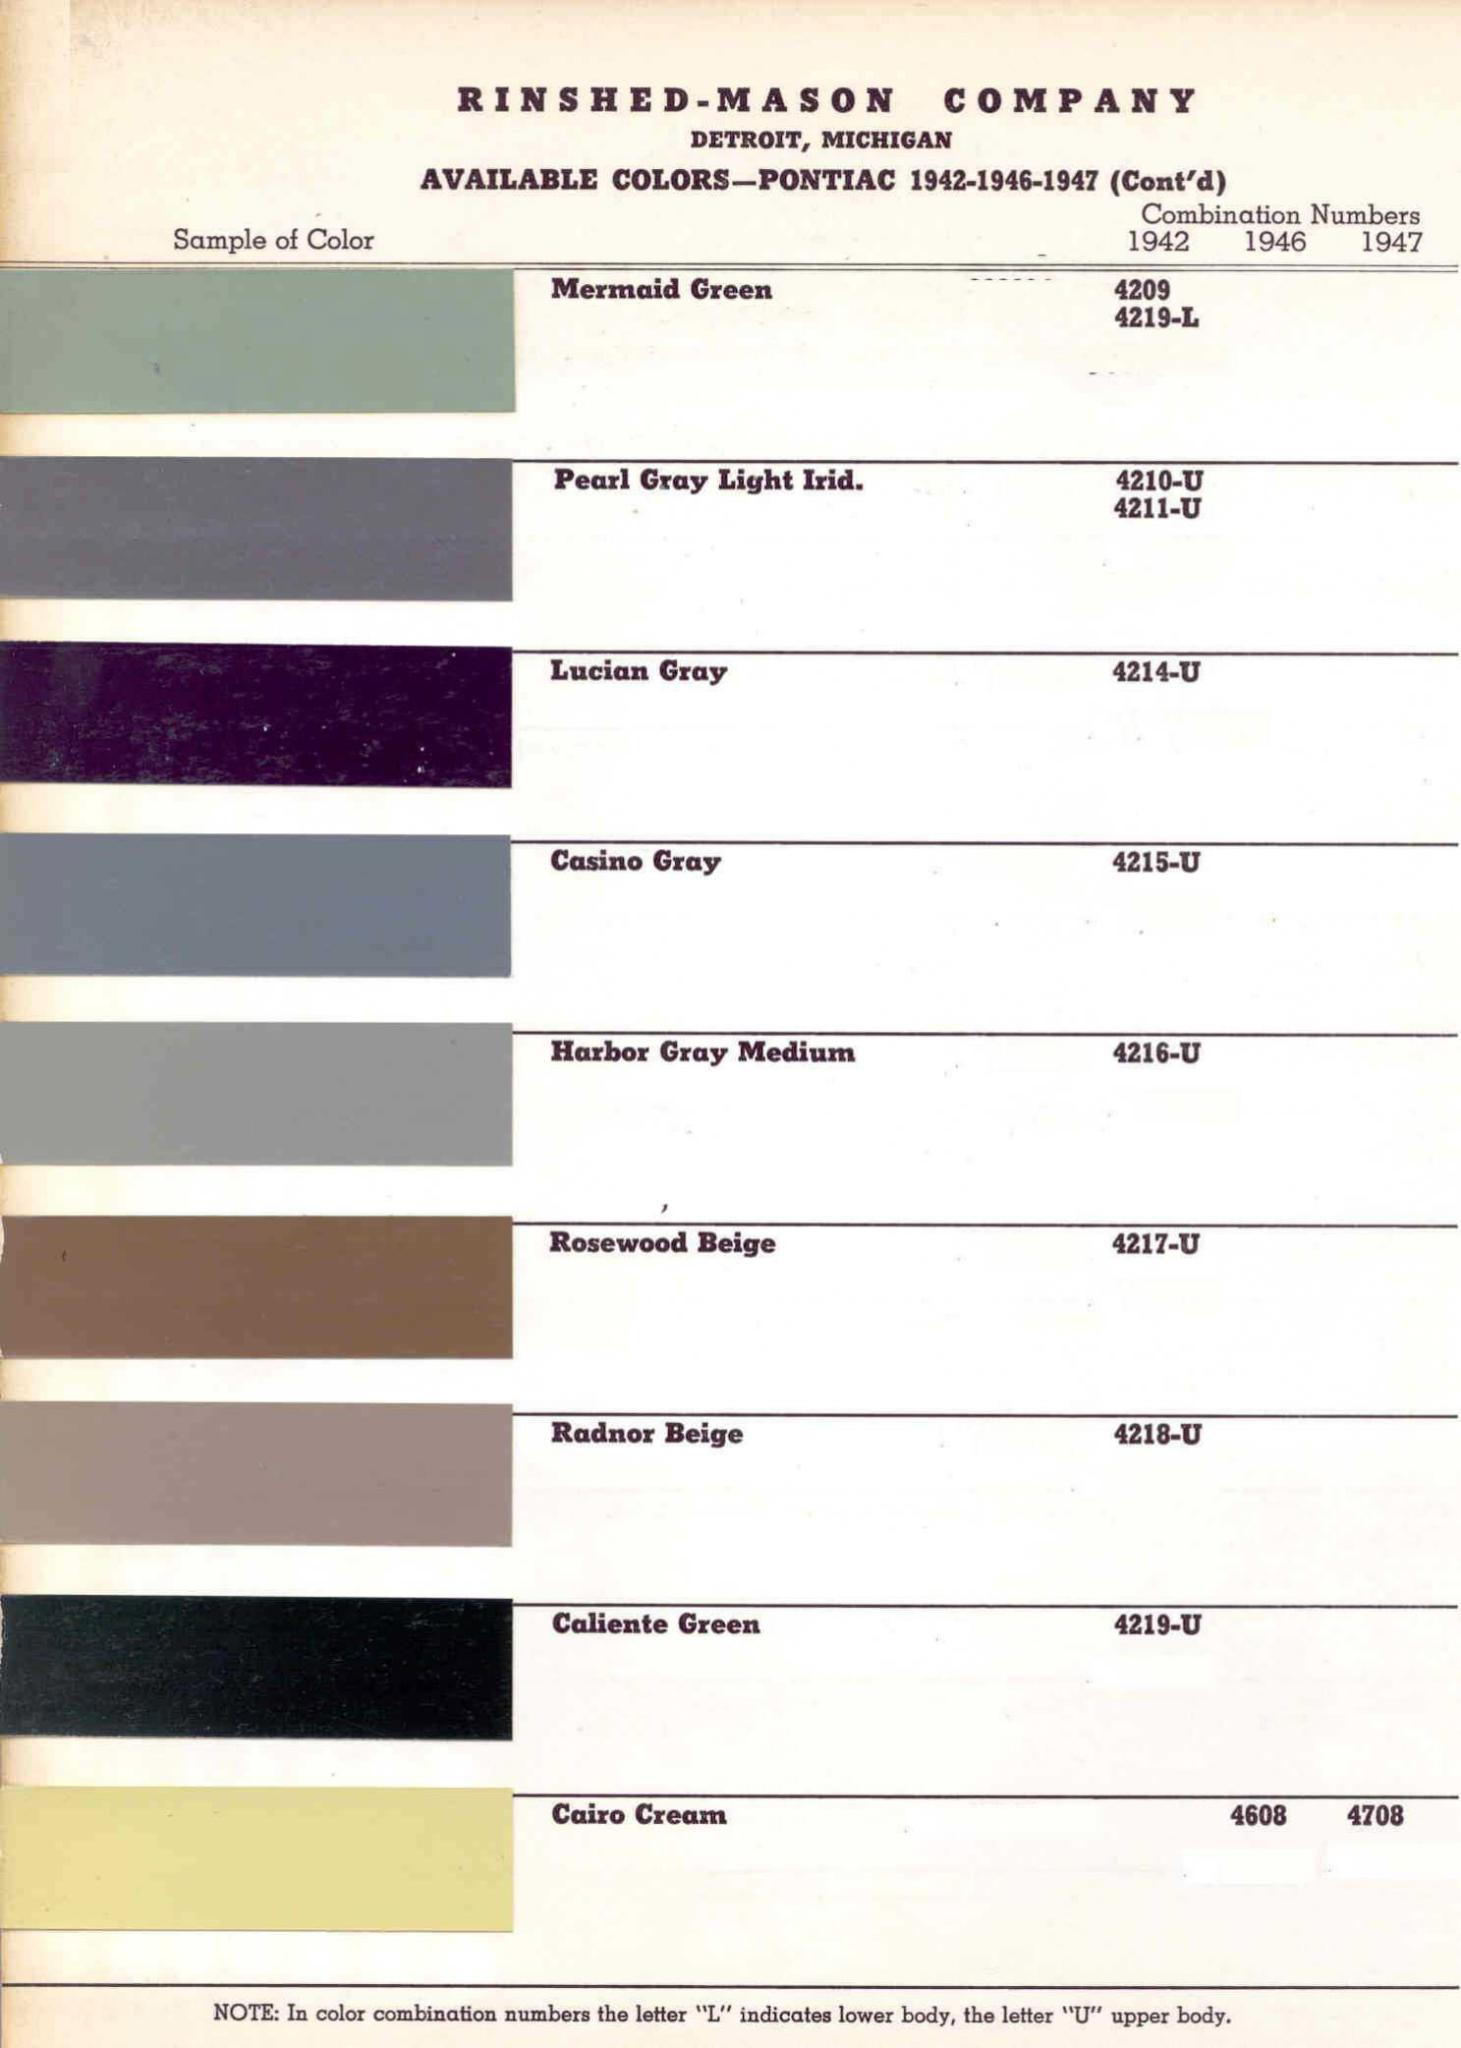 Color Code and Paint Color Chart for Pontiac for 1942-19477